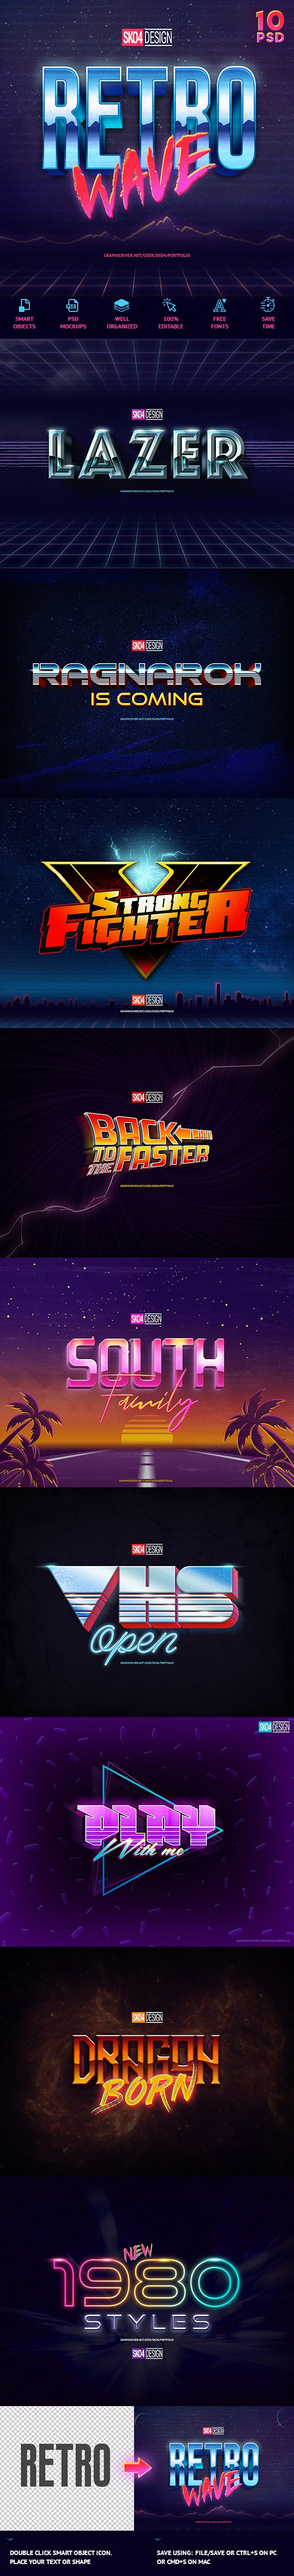 80s Retro Text Effects vol 1 by Sko4 | GraphicRiver